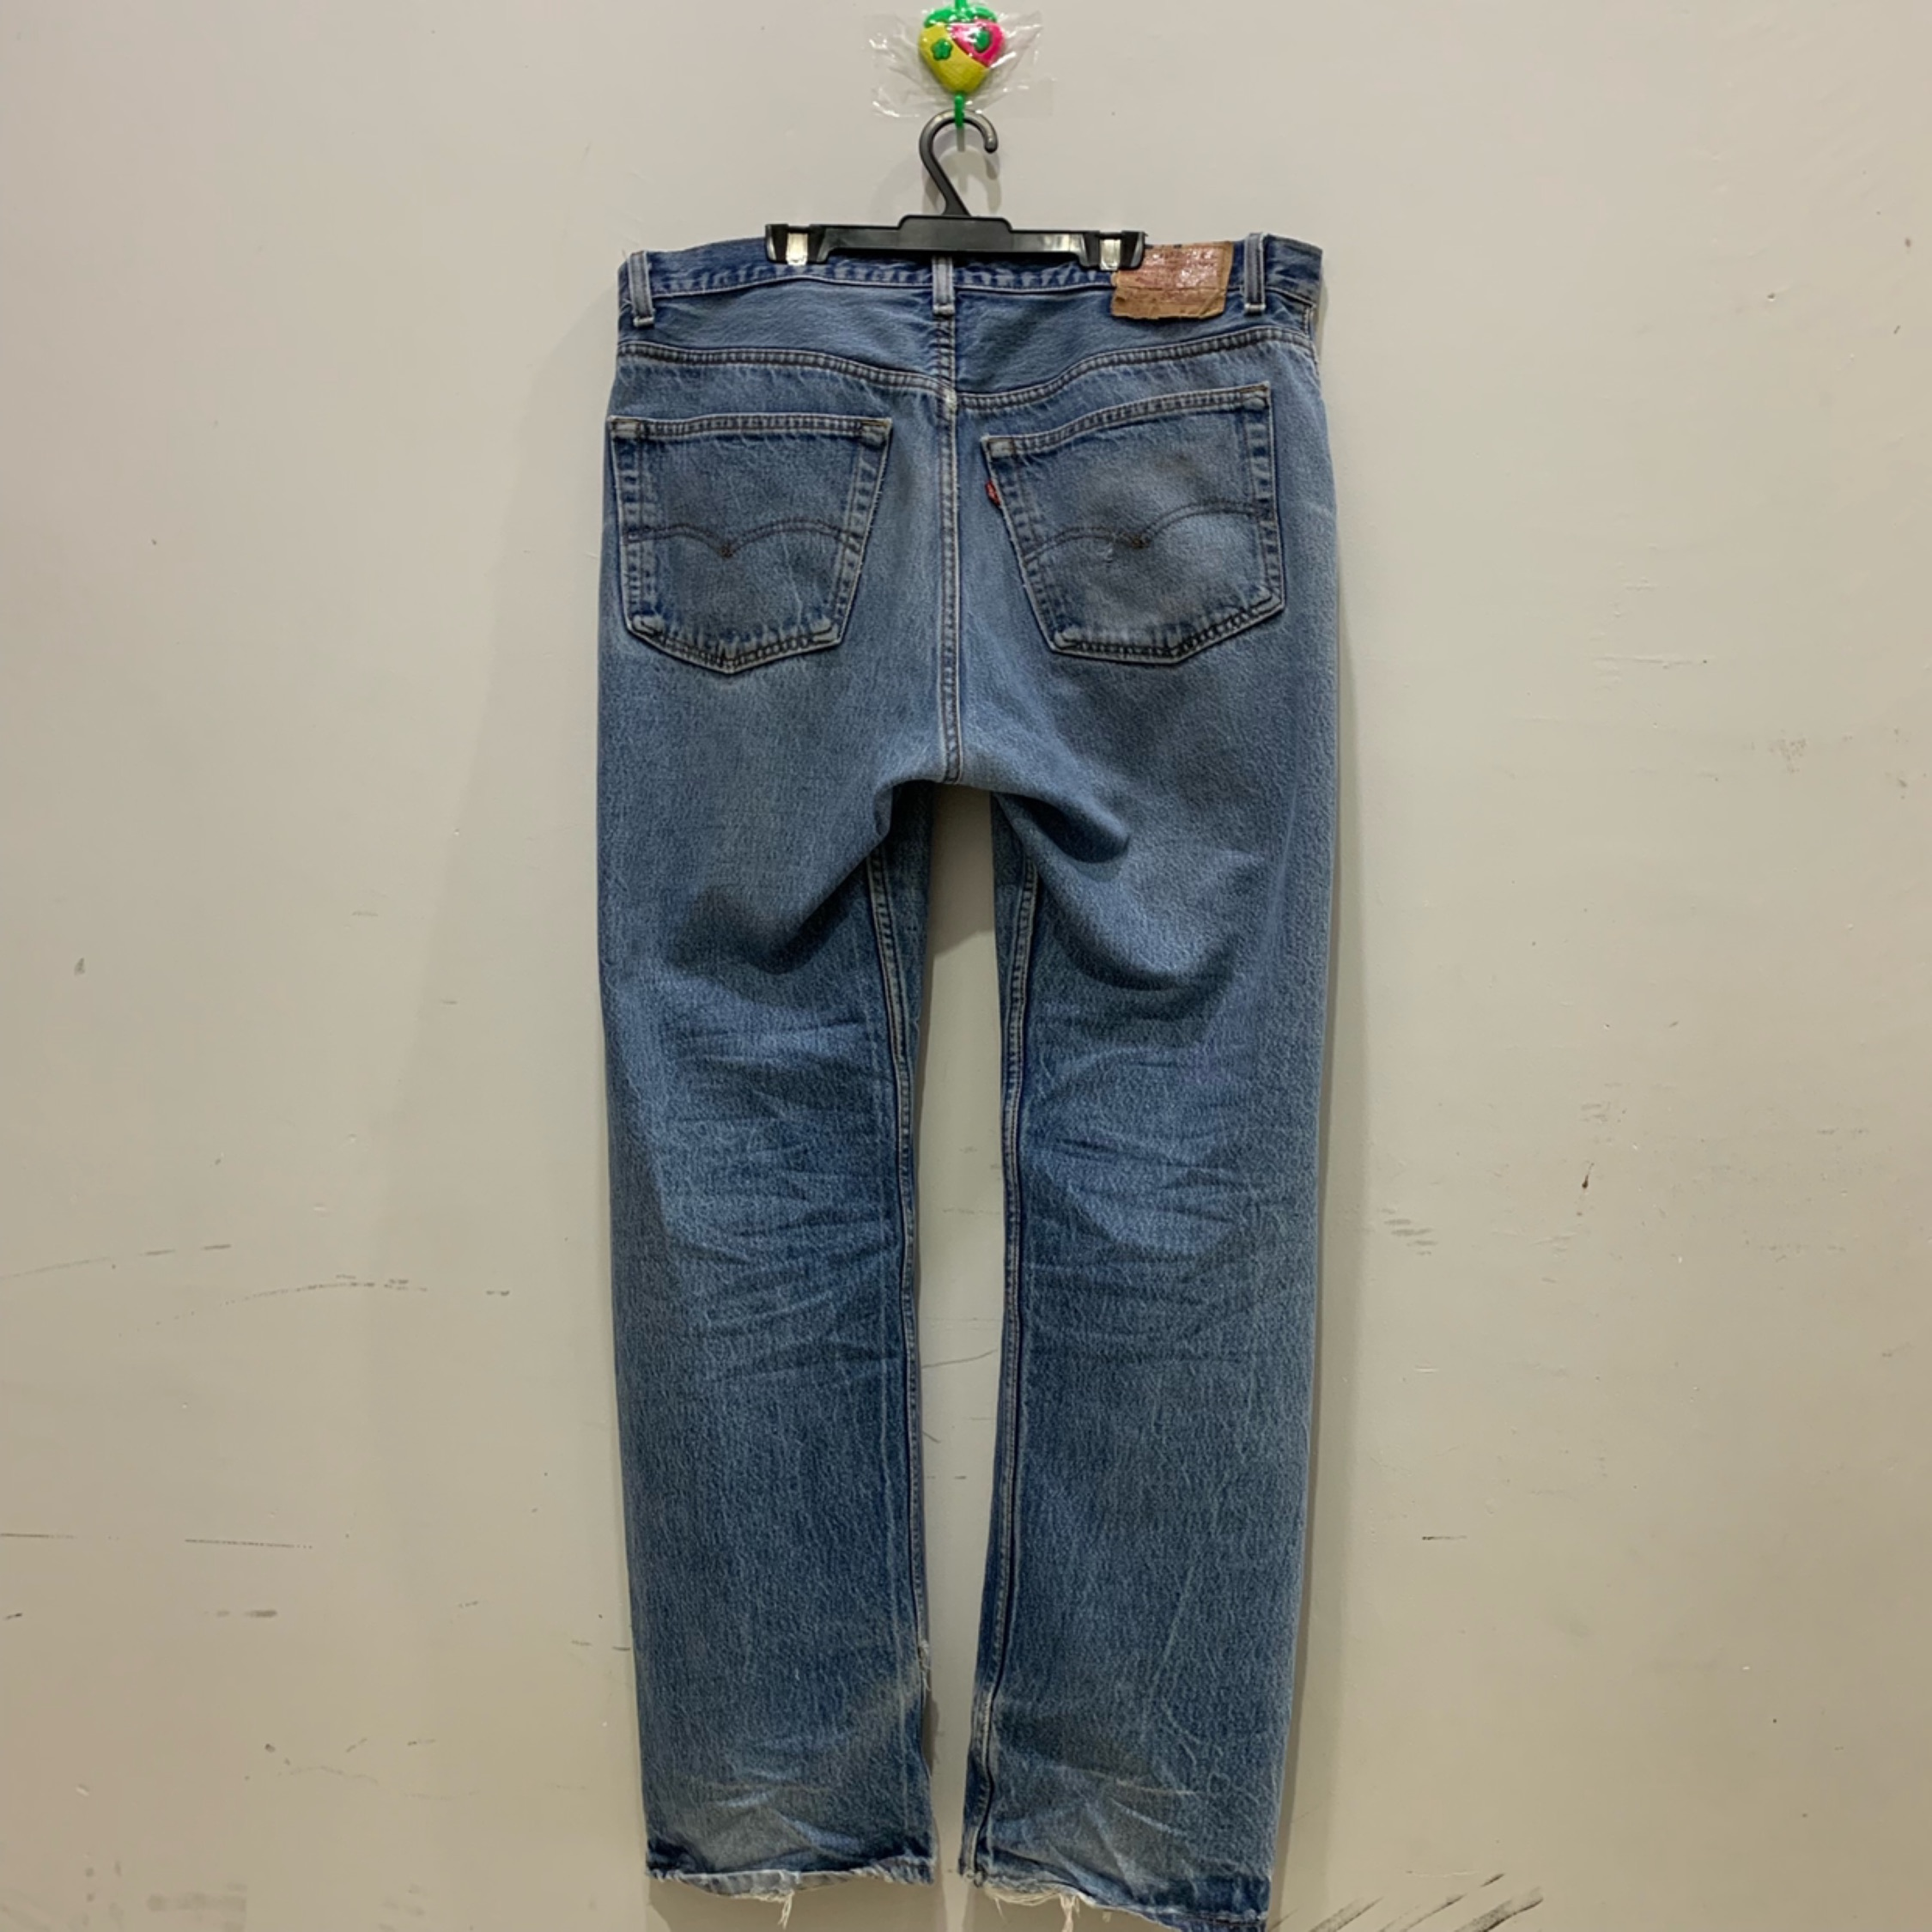 Vintage Levis 501 Jeans Made In Usa